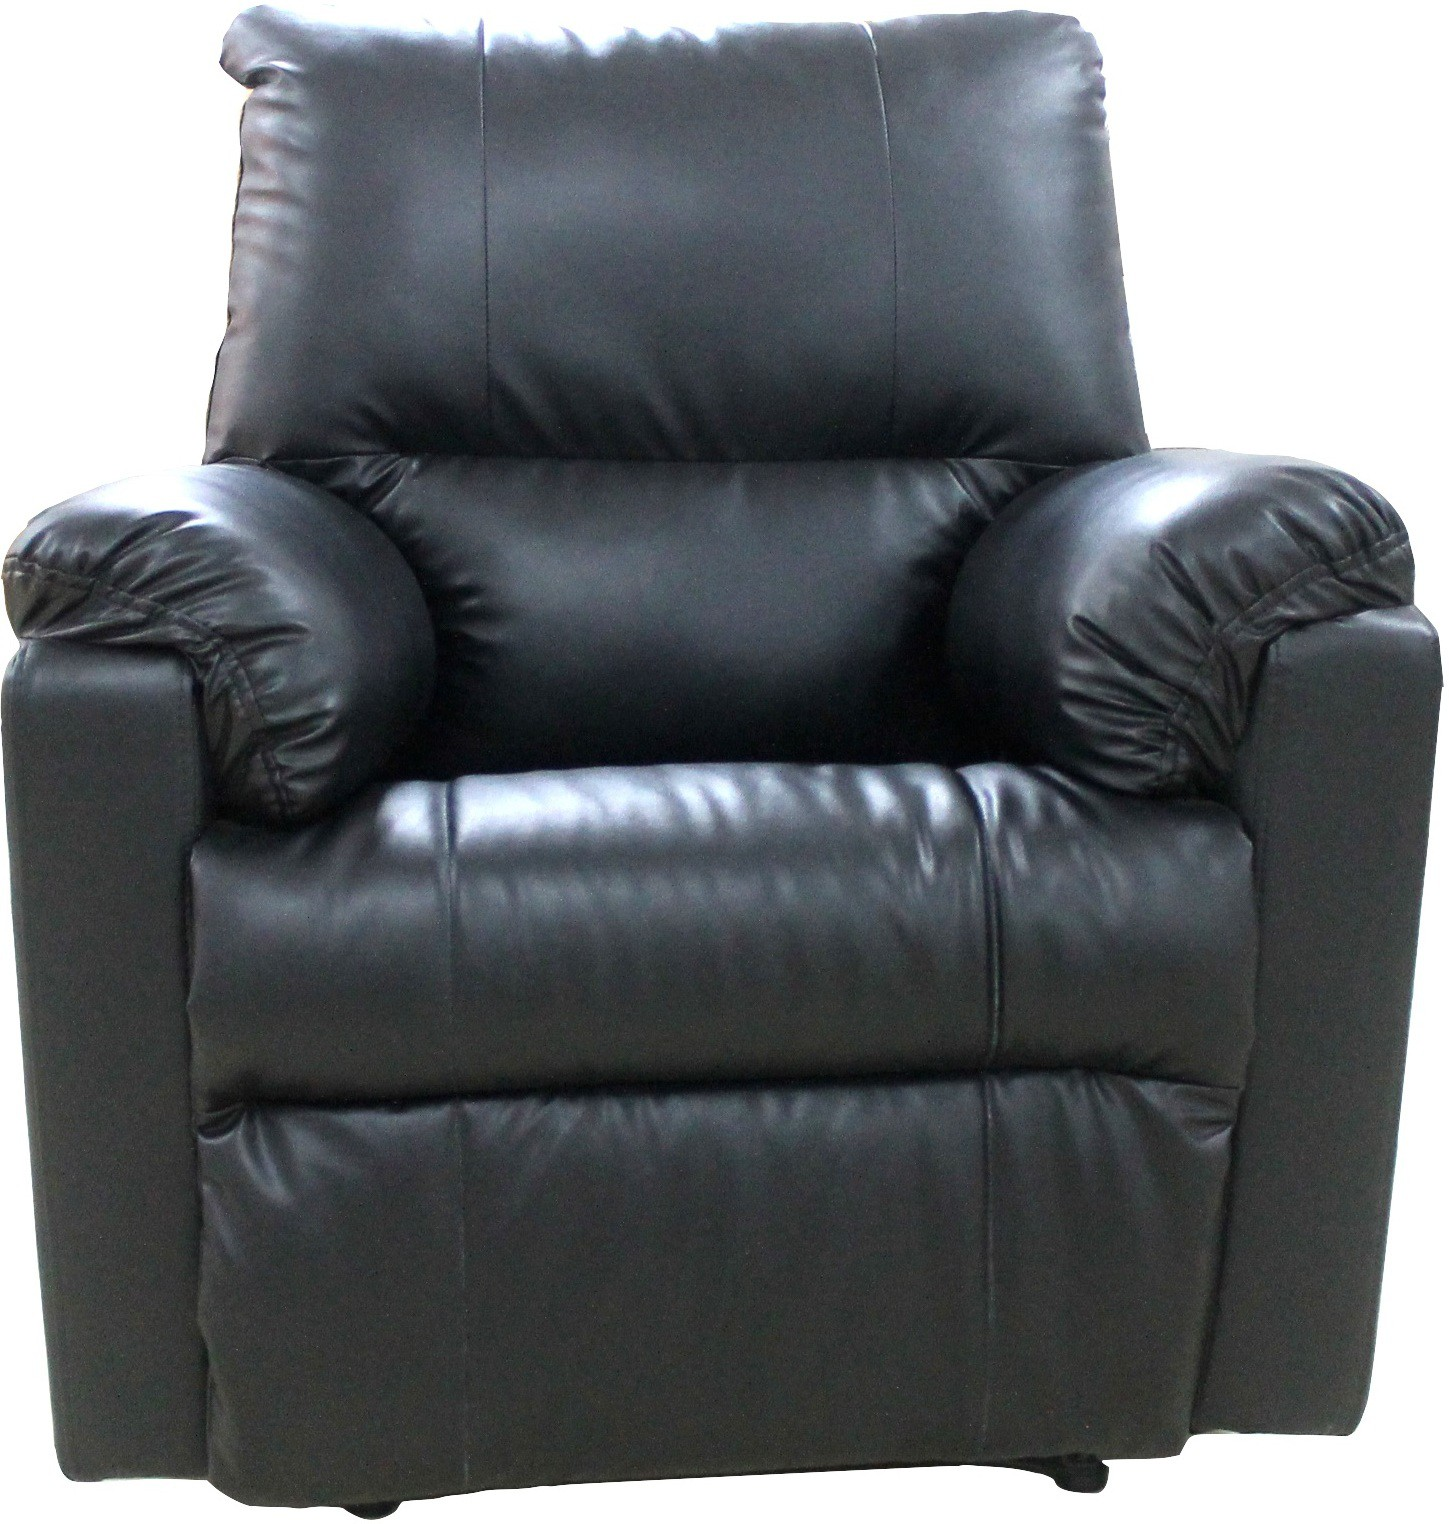 View Amey Leatherette Manual Recliners(Finish Color - Black) Furniture (Amey)